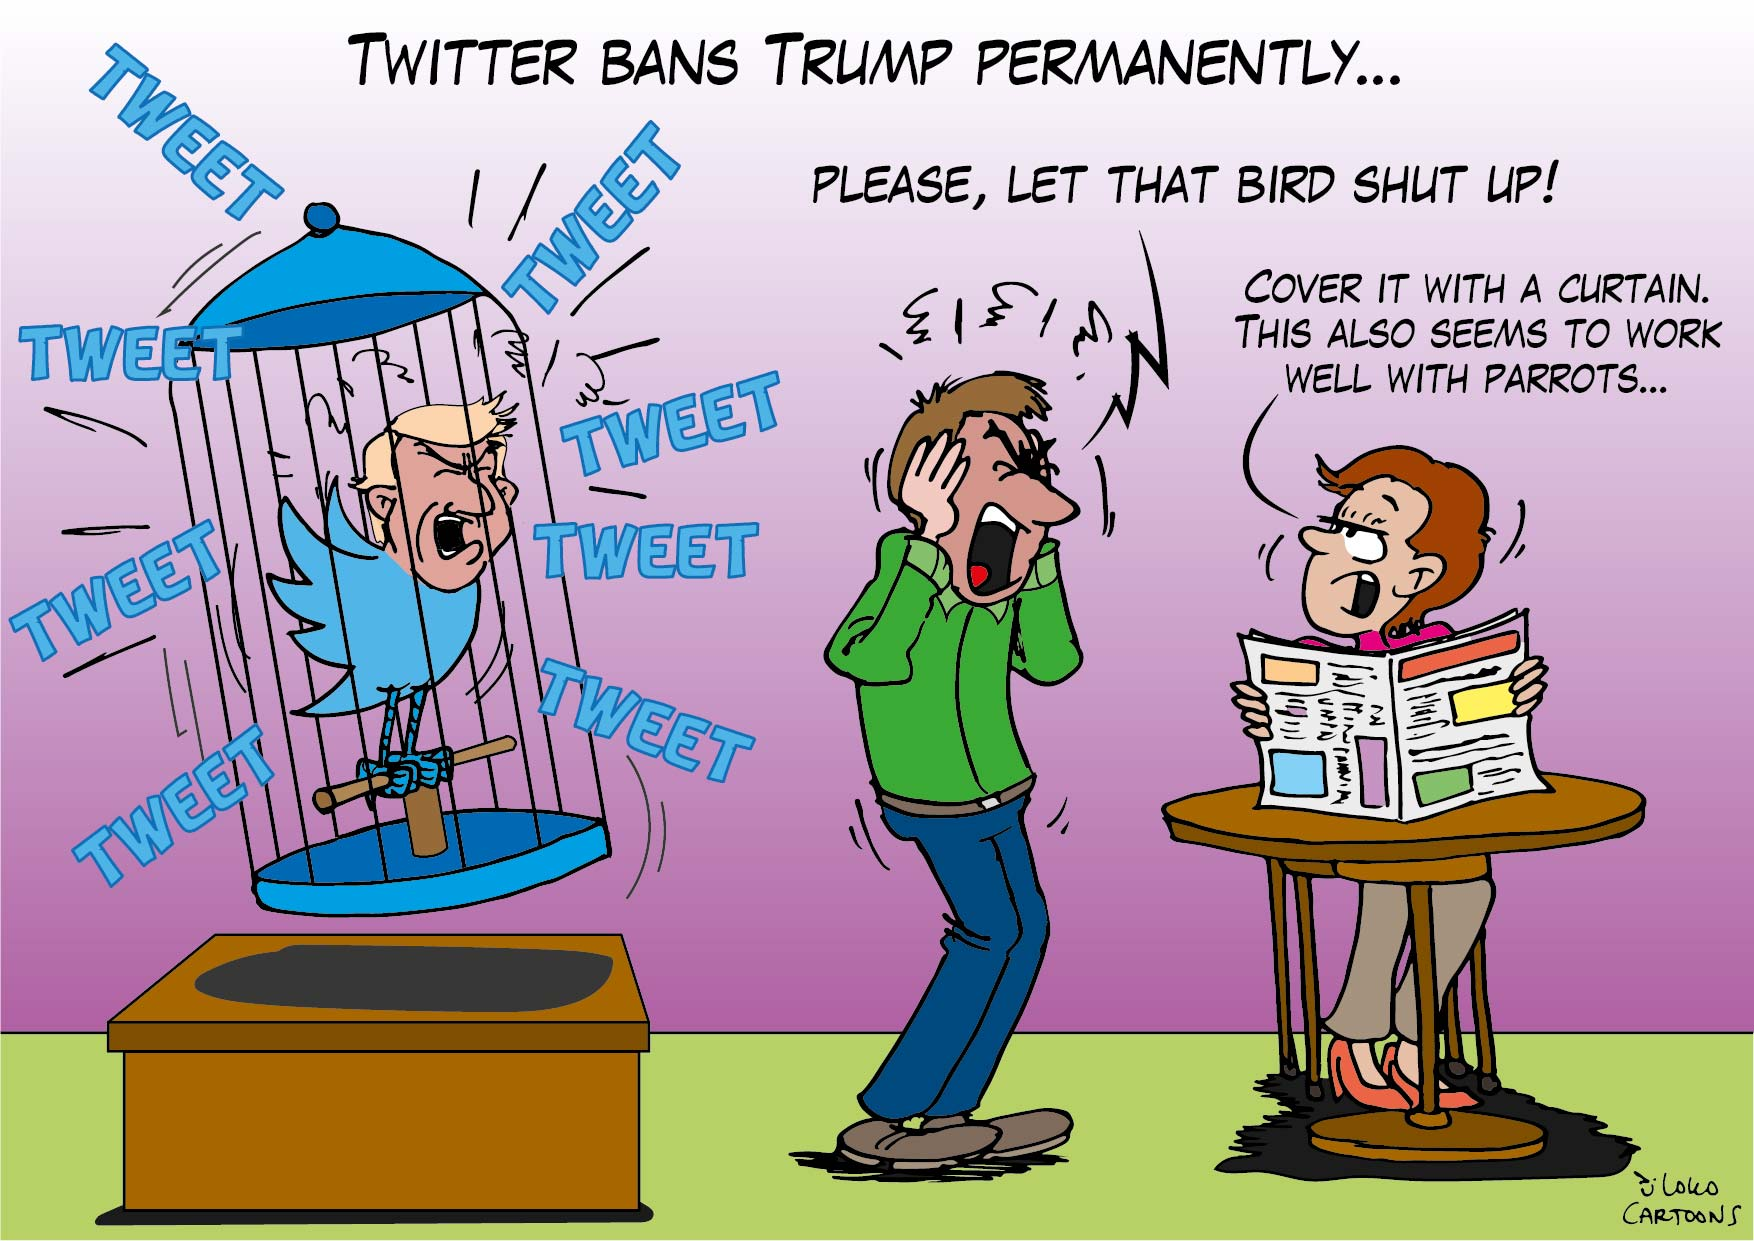 Twitter bans Trump permanently…